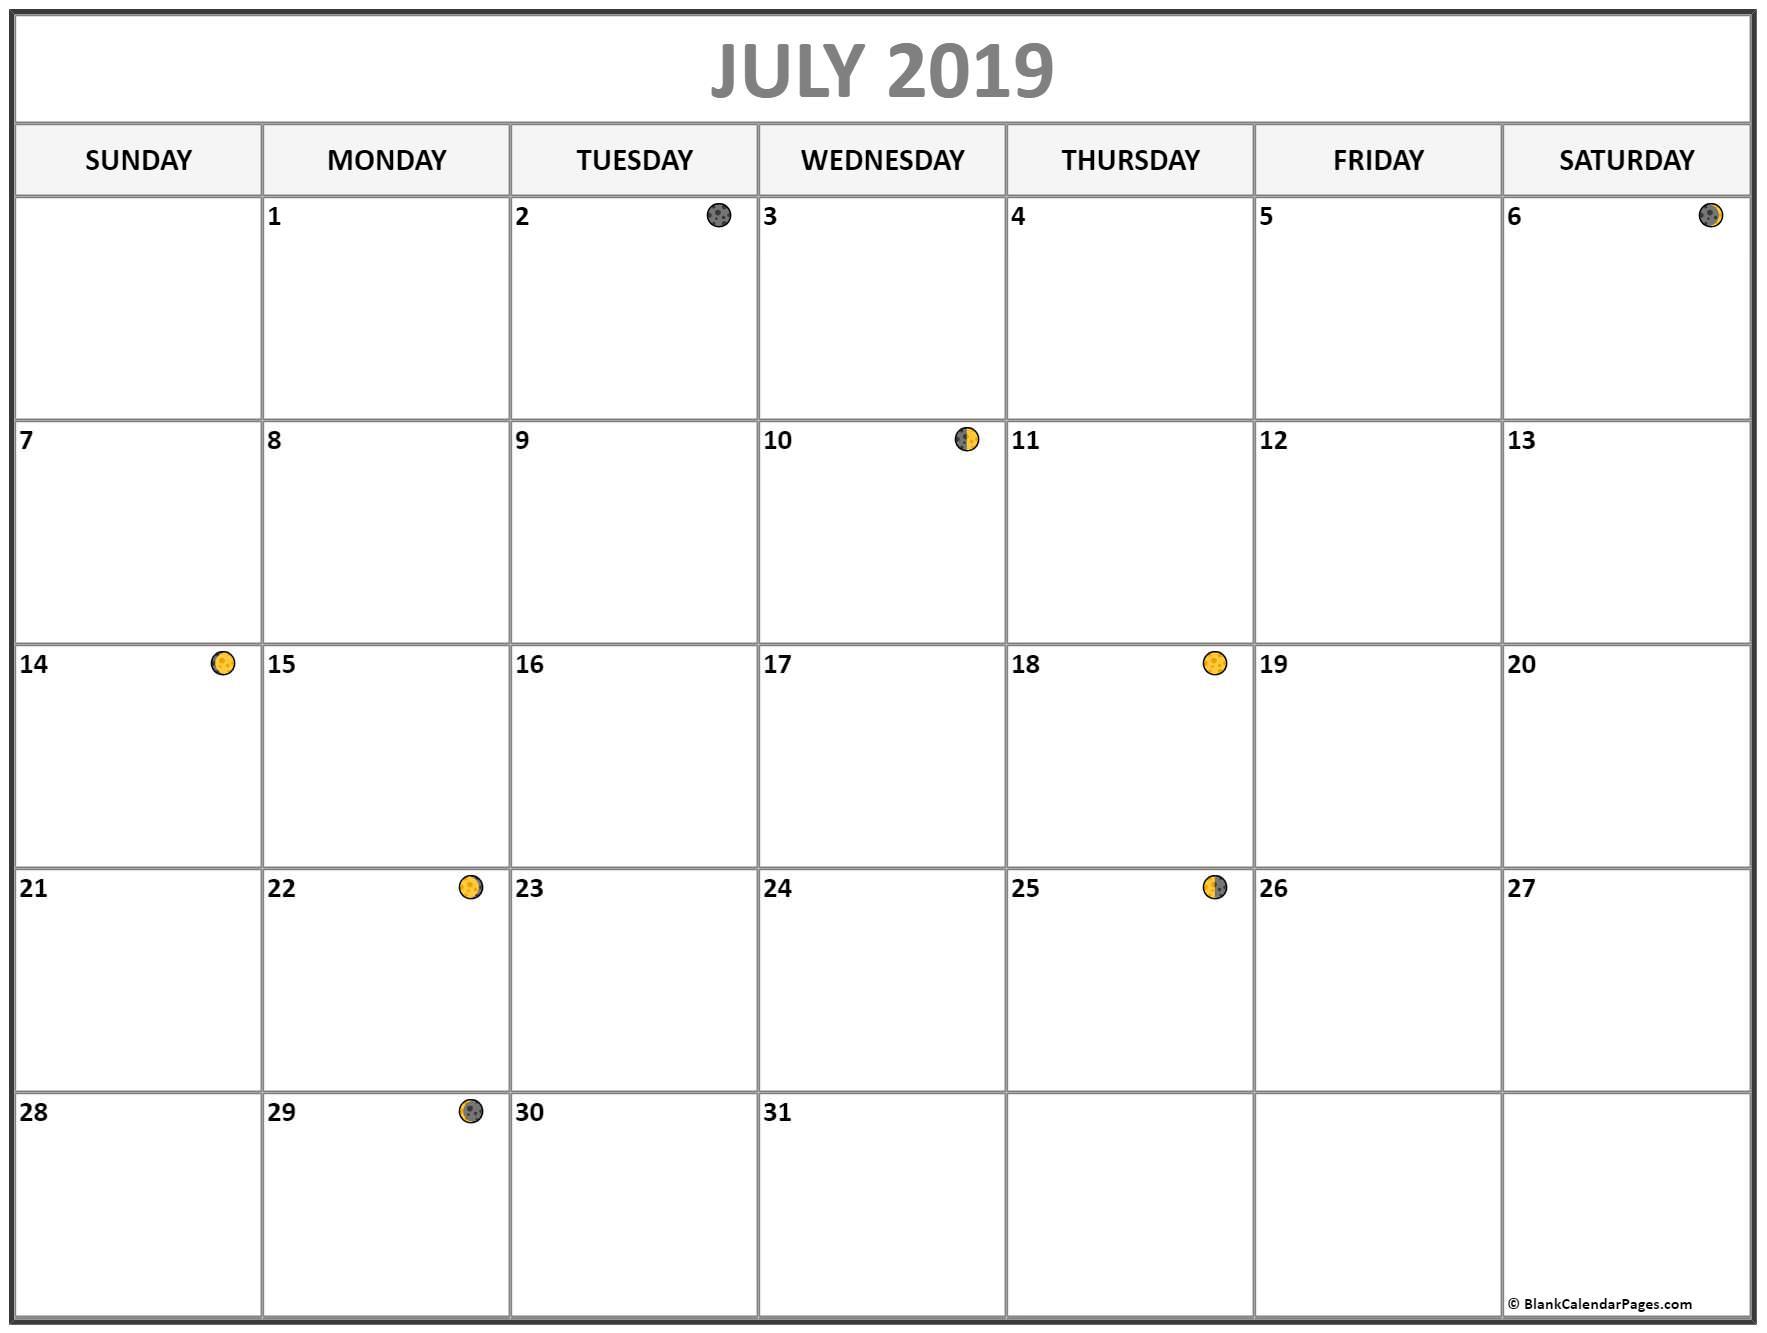 graphic relating to Printable July Calendar identify Printable July 2019 Moon Calendar - Cost-free Printable Calendar